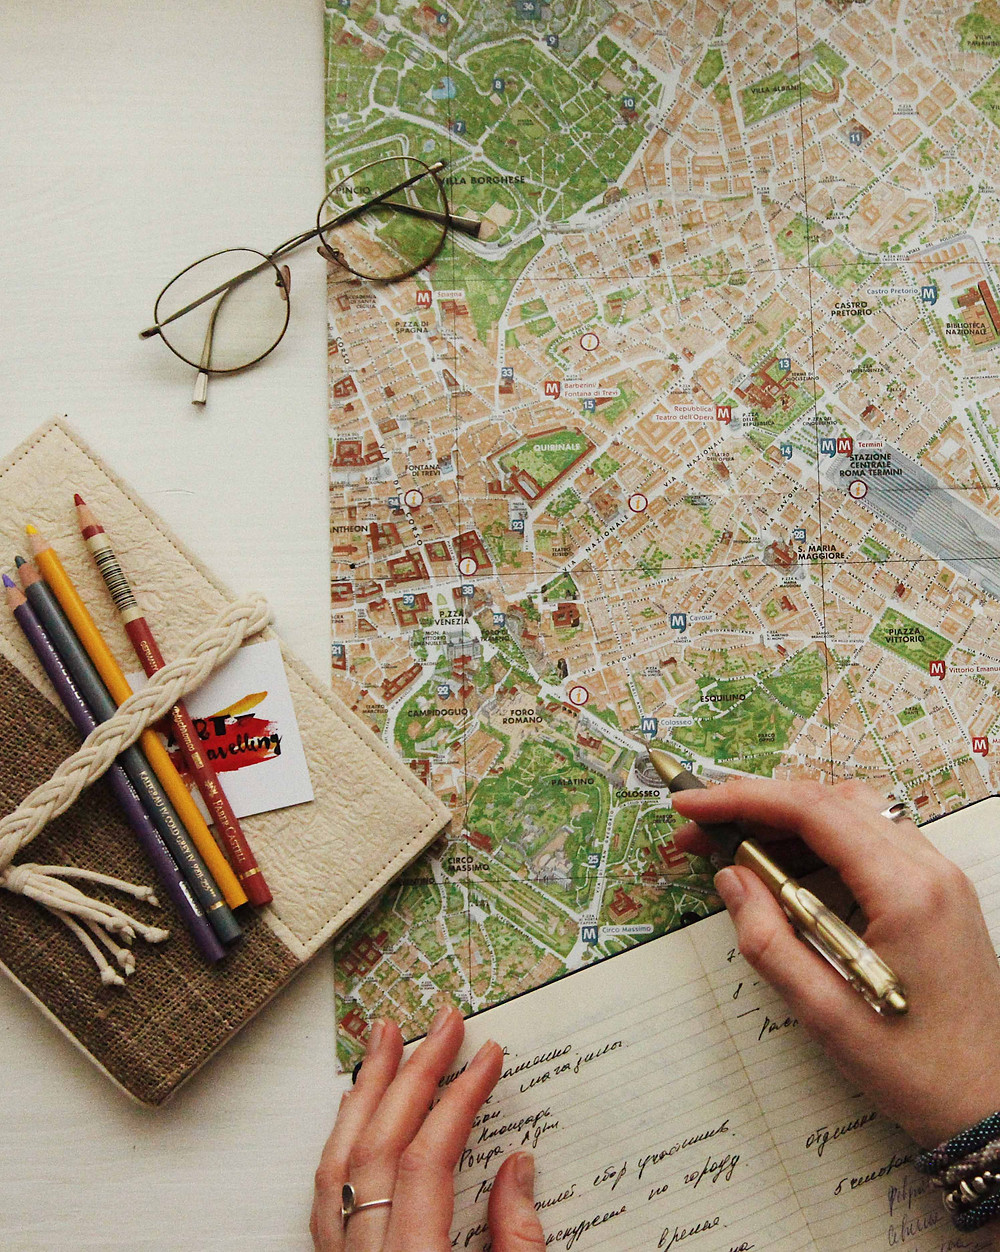 A map, notebooks, pencils, and a travel diary